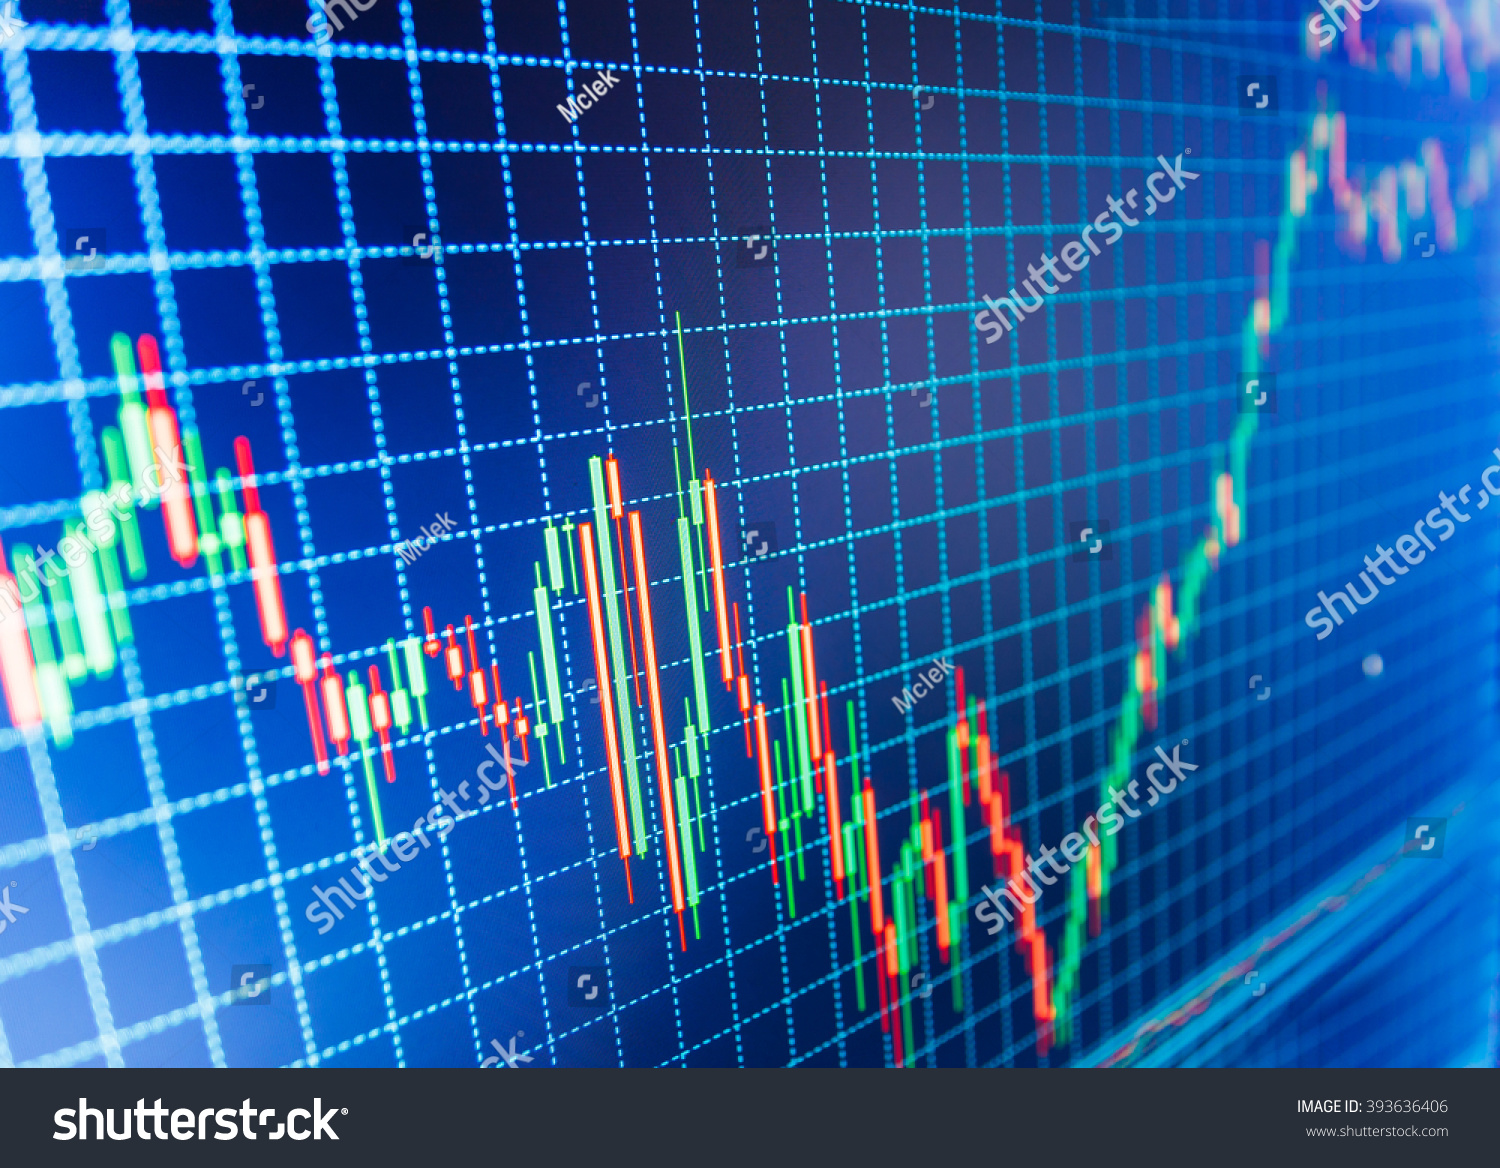 Forex Quotes Online Forex Data Share Price Quotes Stock Photo 393636406